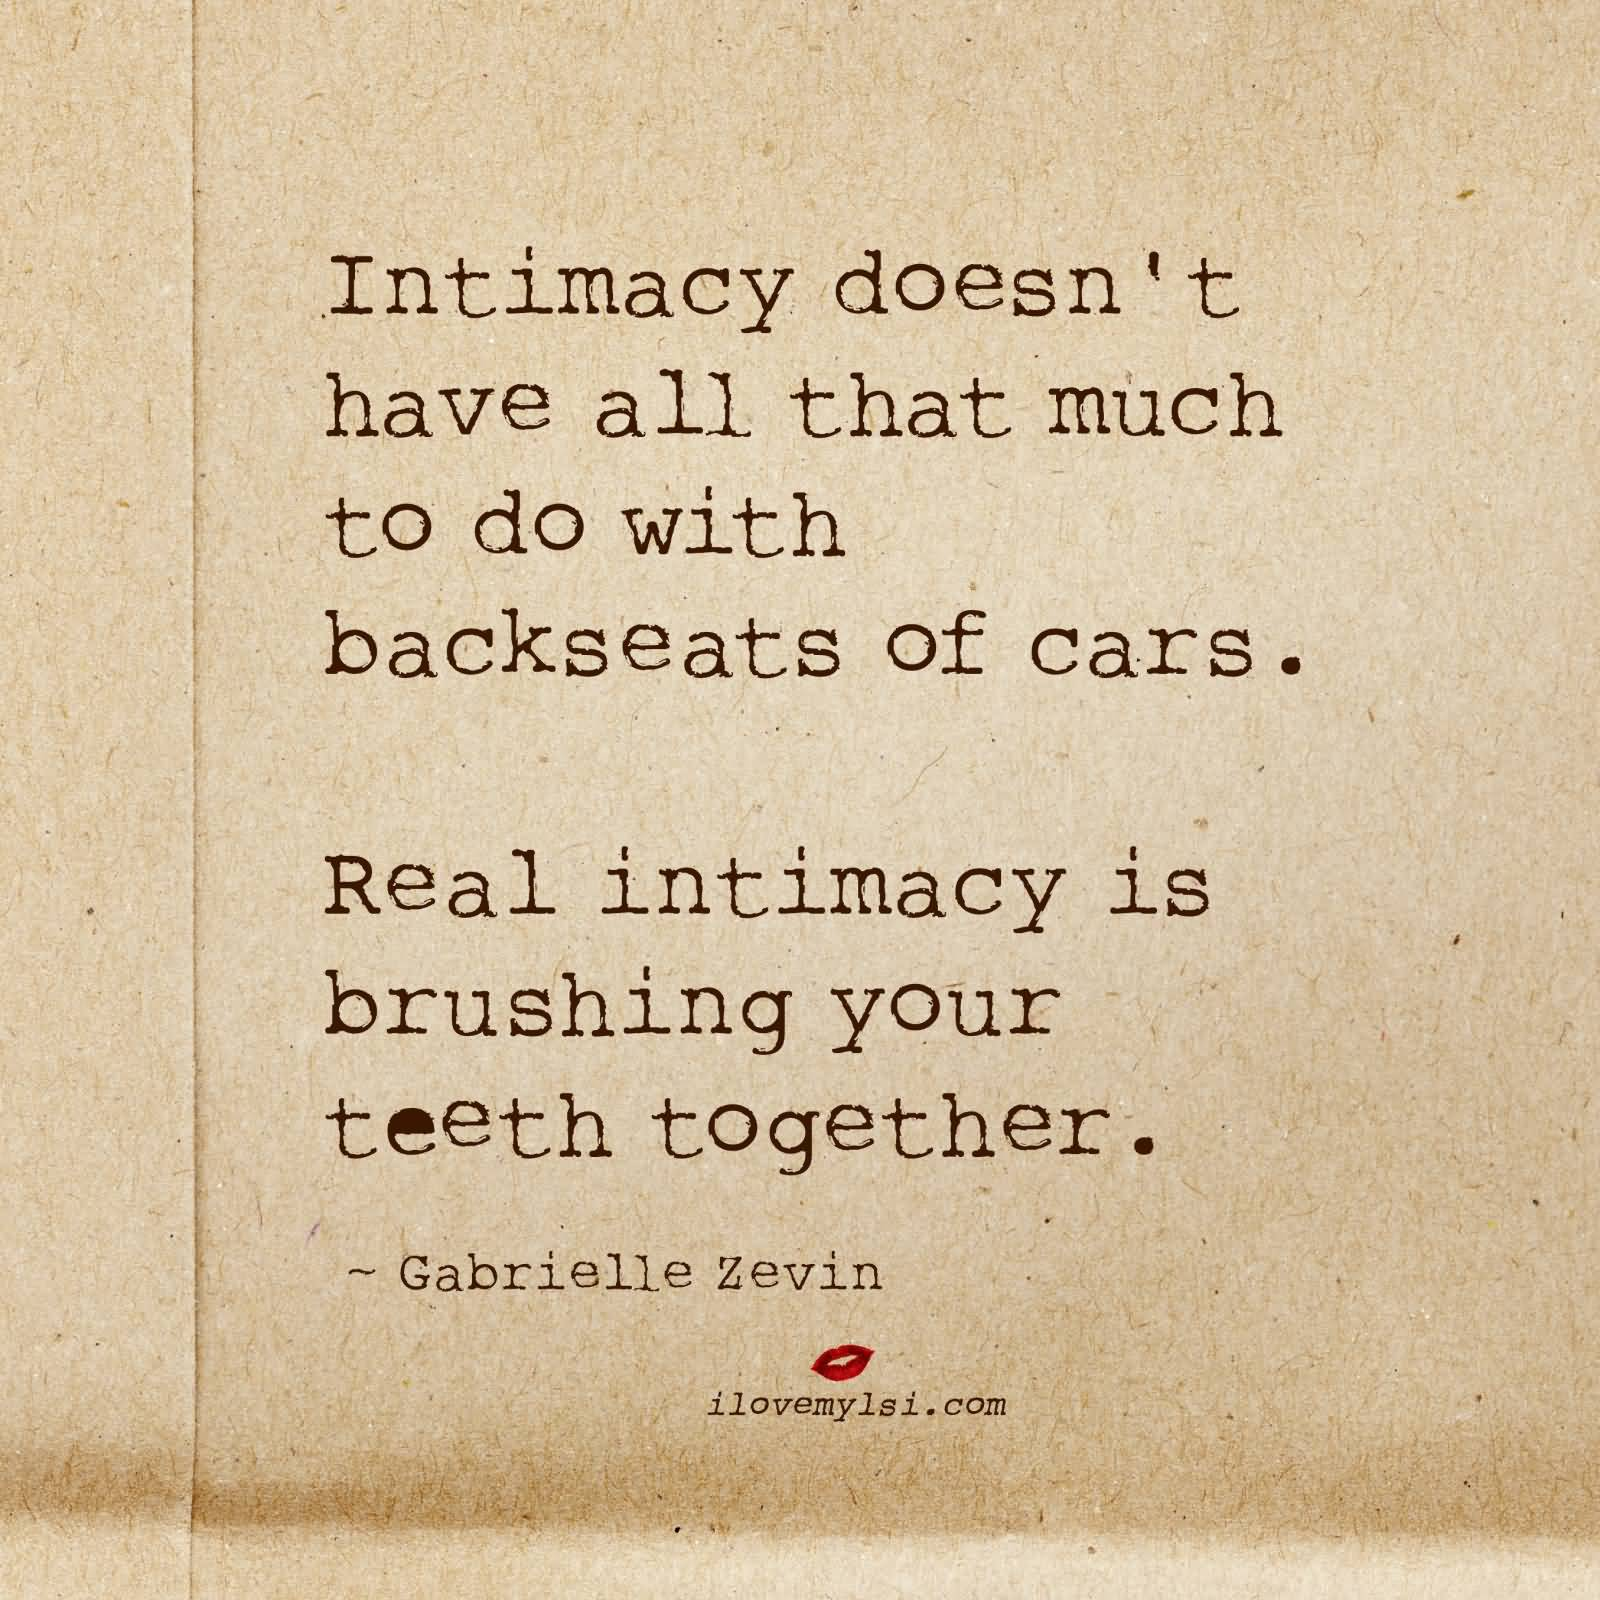 Art Of Seduction Quotes 65 Great Intimacy Quotes And Sayings